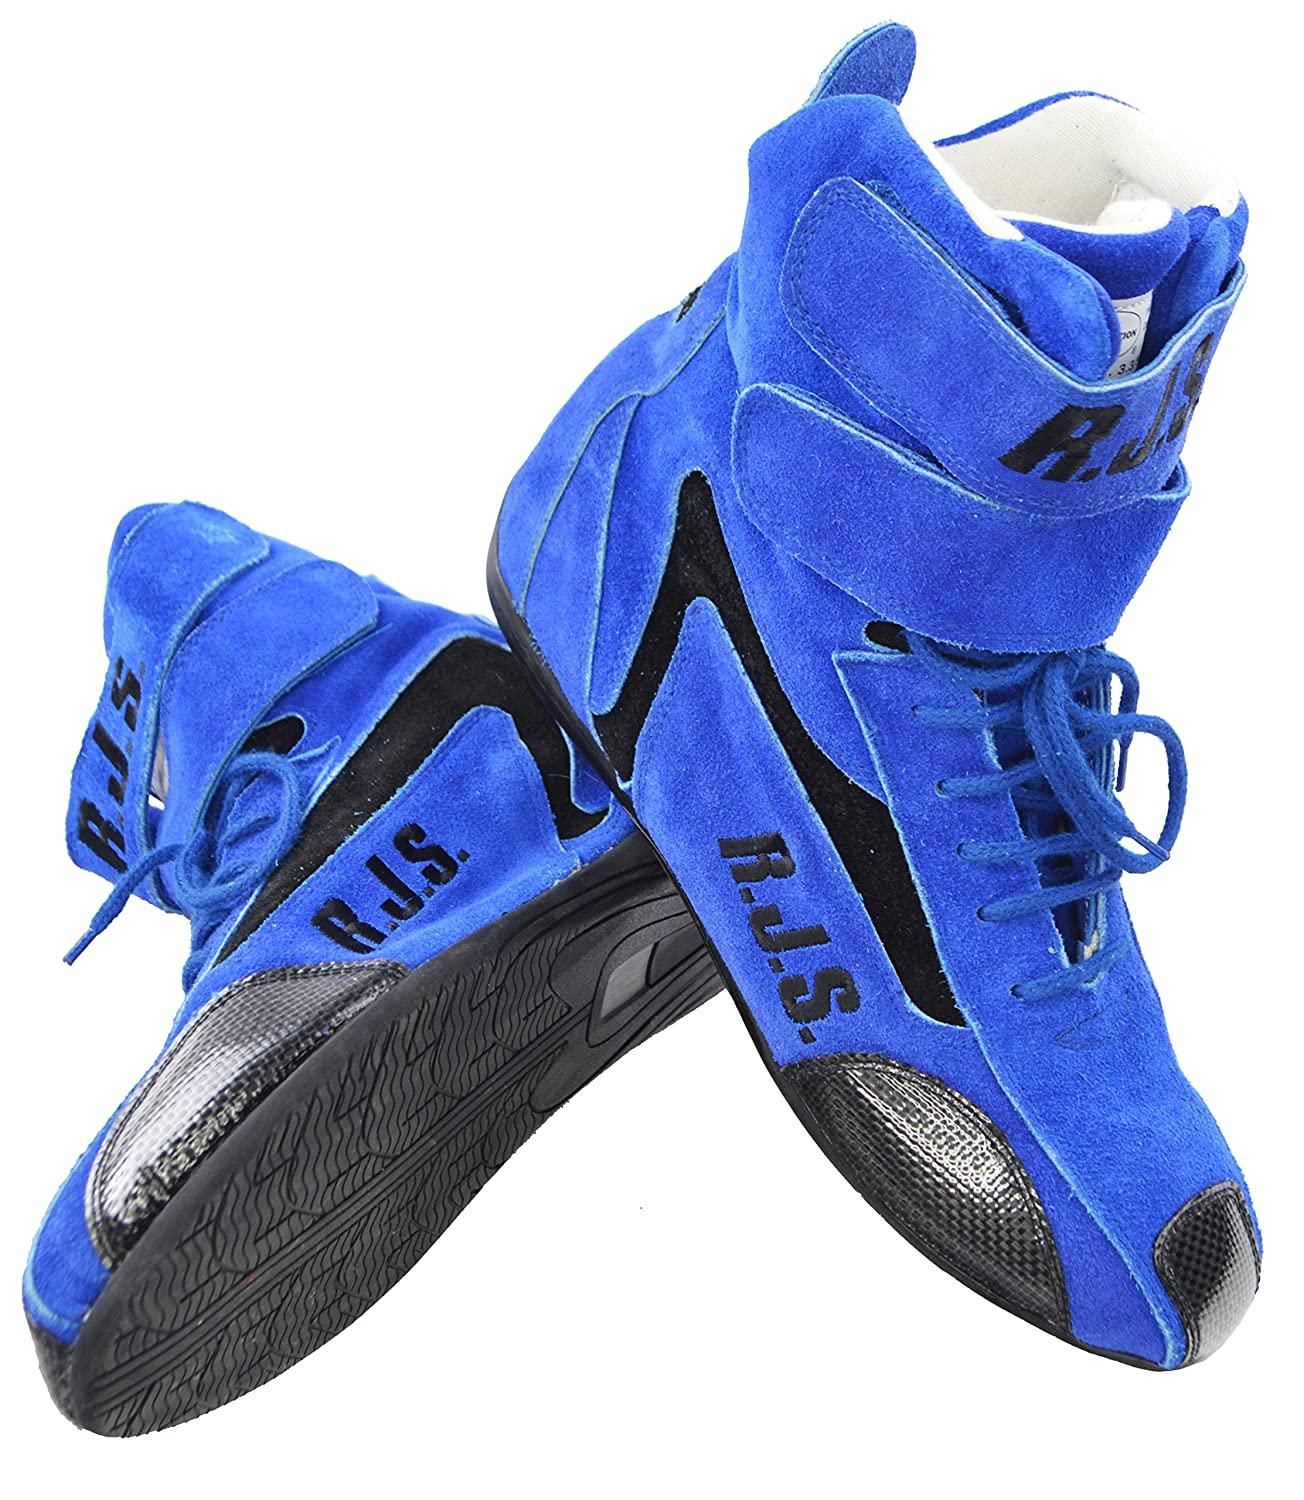 afb71676e45e2 Amazon.com: RACERDIRECT.NET RJS Racing Safety Equipment Blue HI TOP ...